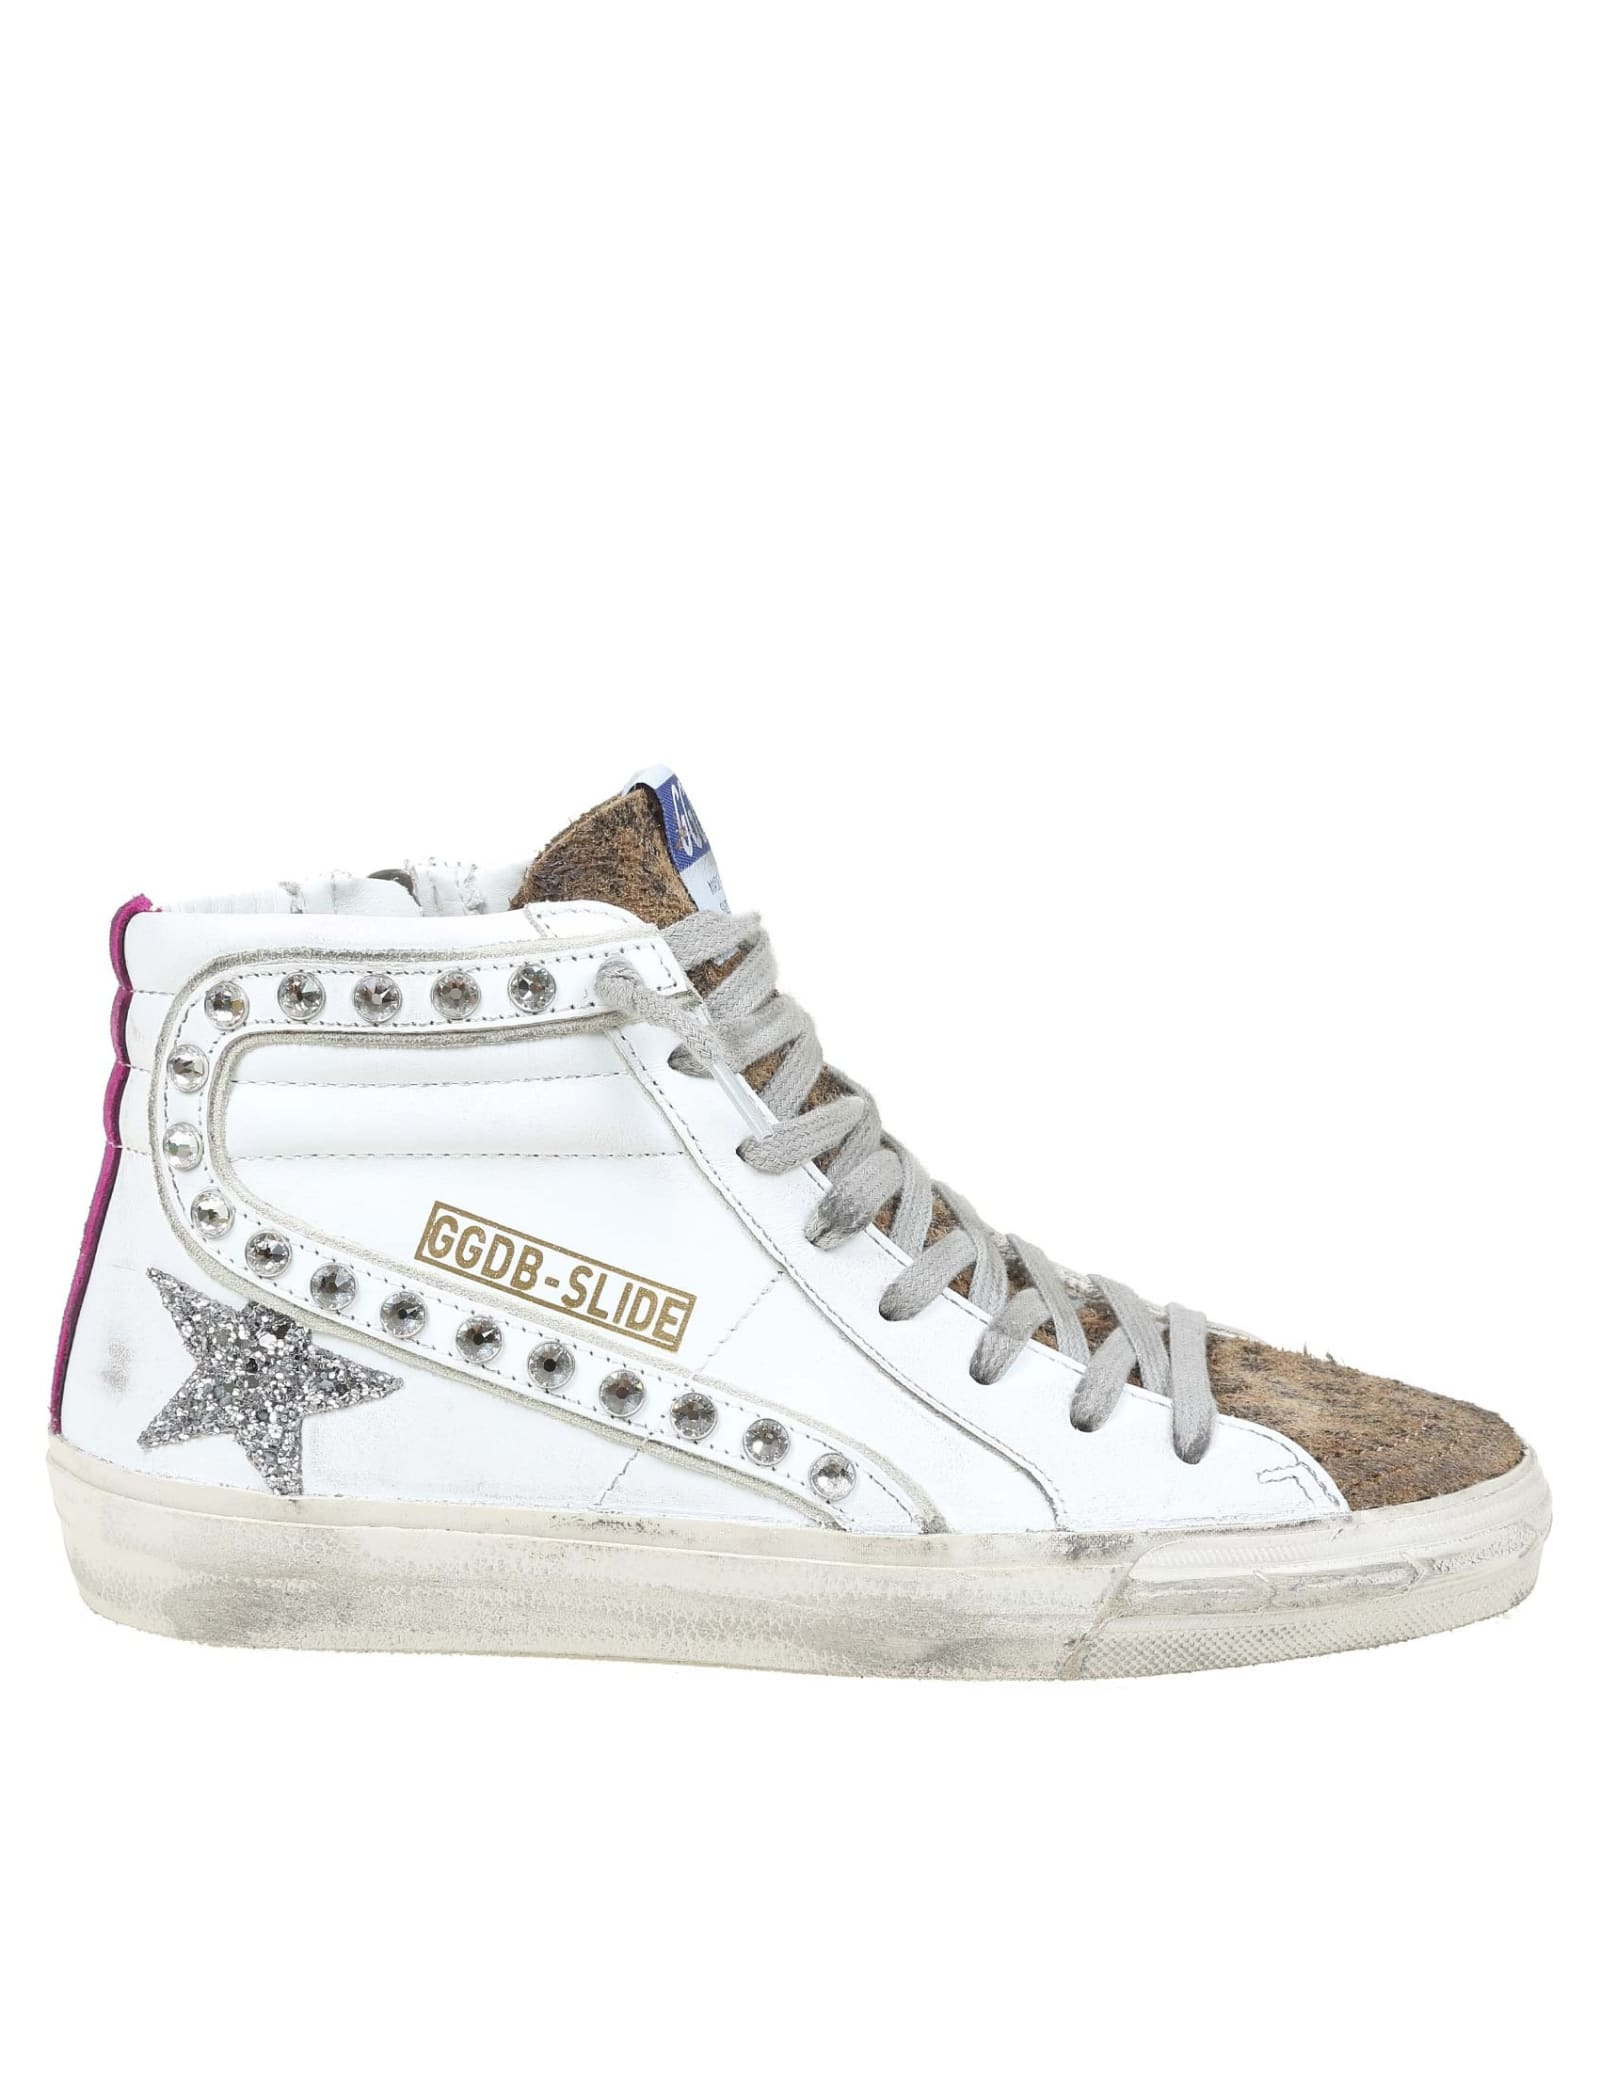 Golden Goose Leather Slide Sneakers With Applied Studs